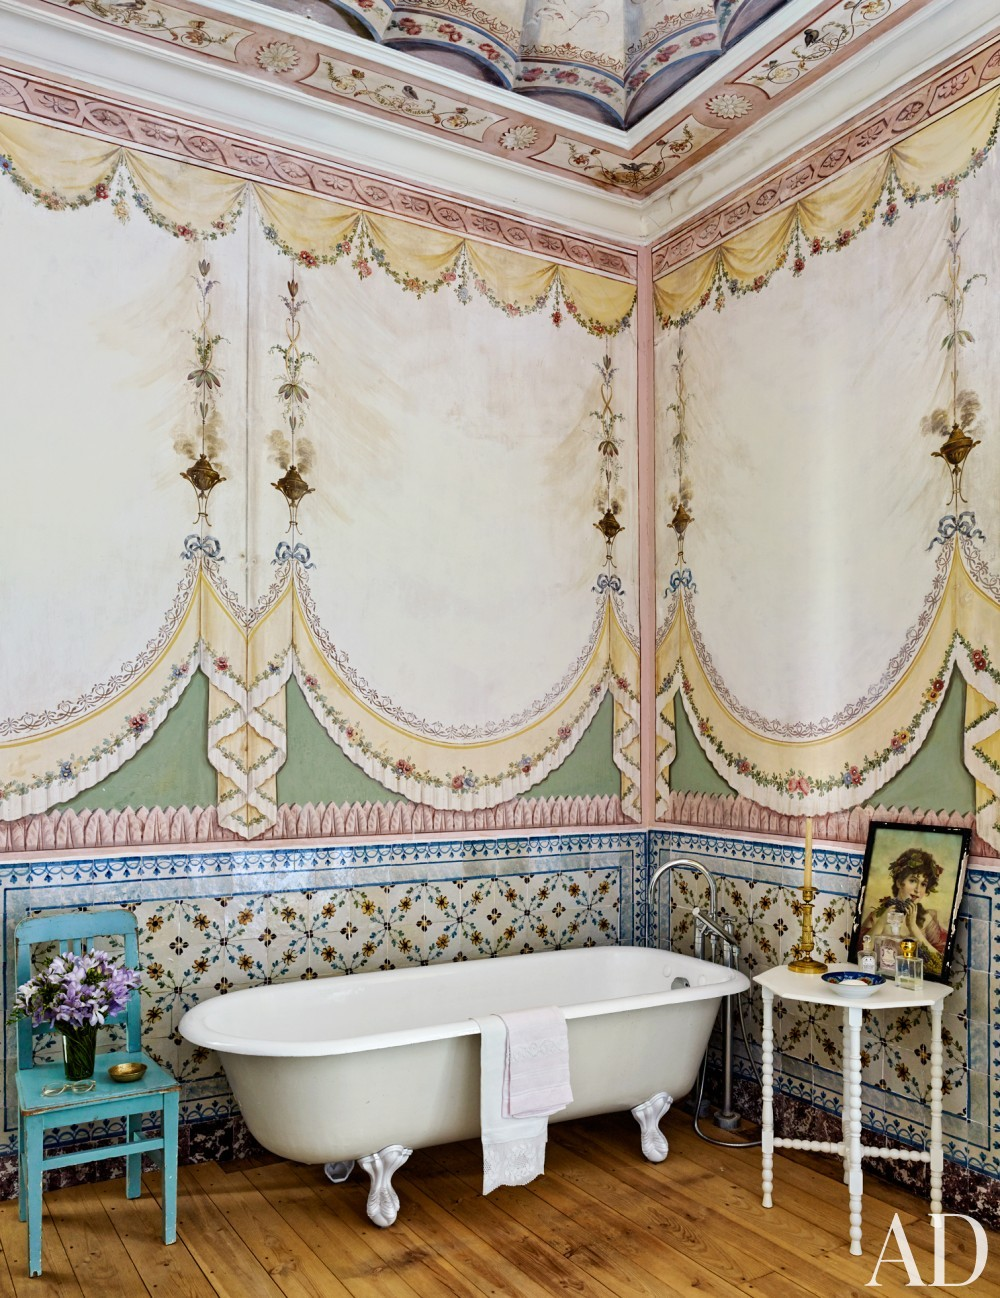 Traditional Bathroom by Pedro Espírito Santo in Lisbon, Portugal